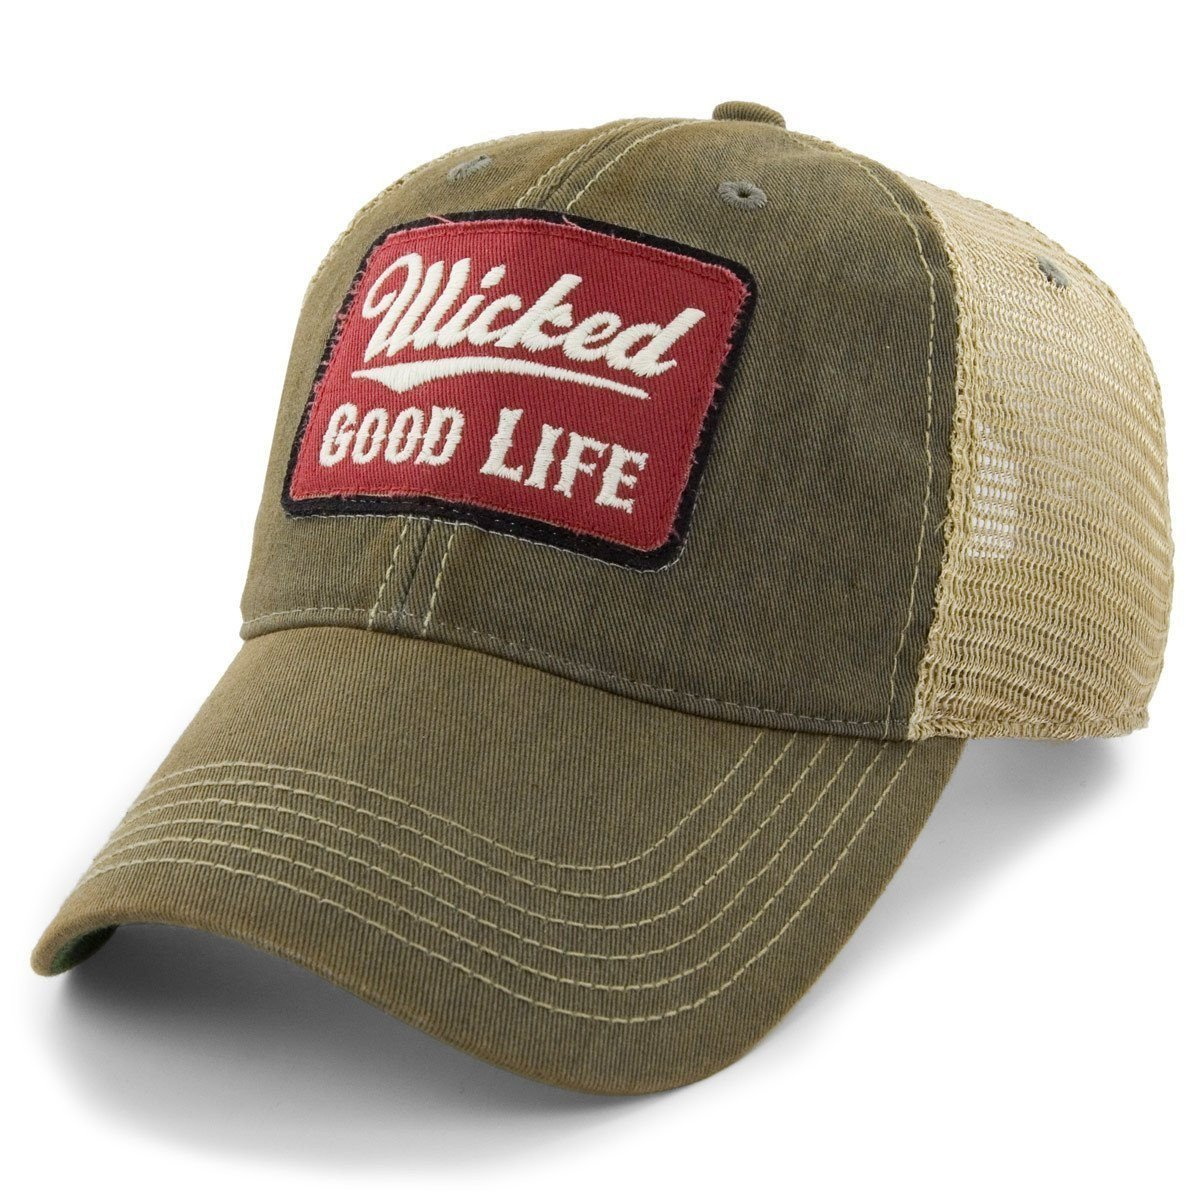 06ccec7d744 Chowdaheadz Wicked Good Life Dirty Water Mesh Trucker Hat - Sandalwood at  Amazon Men s Clothing store